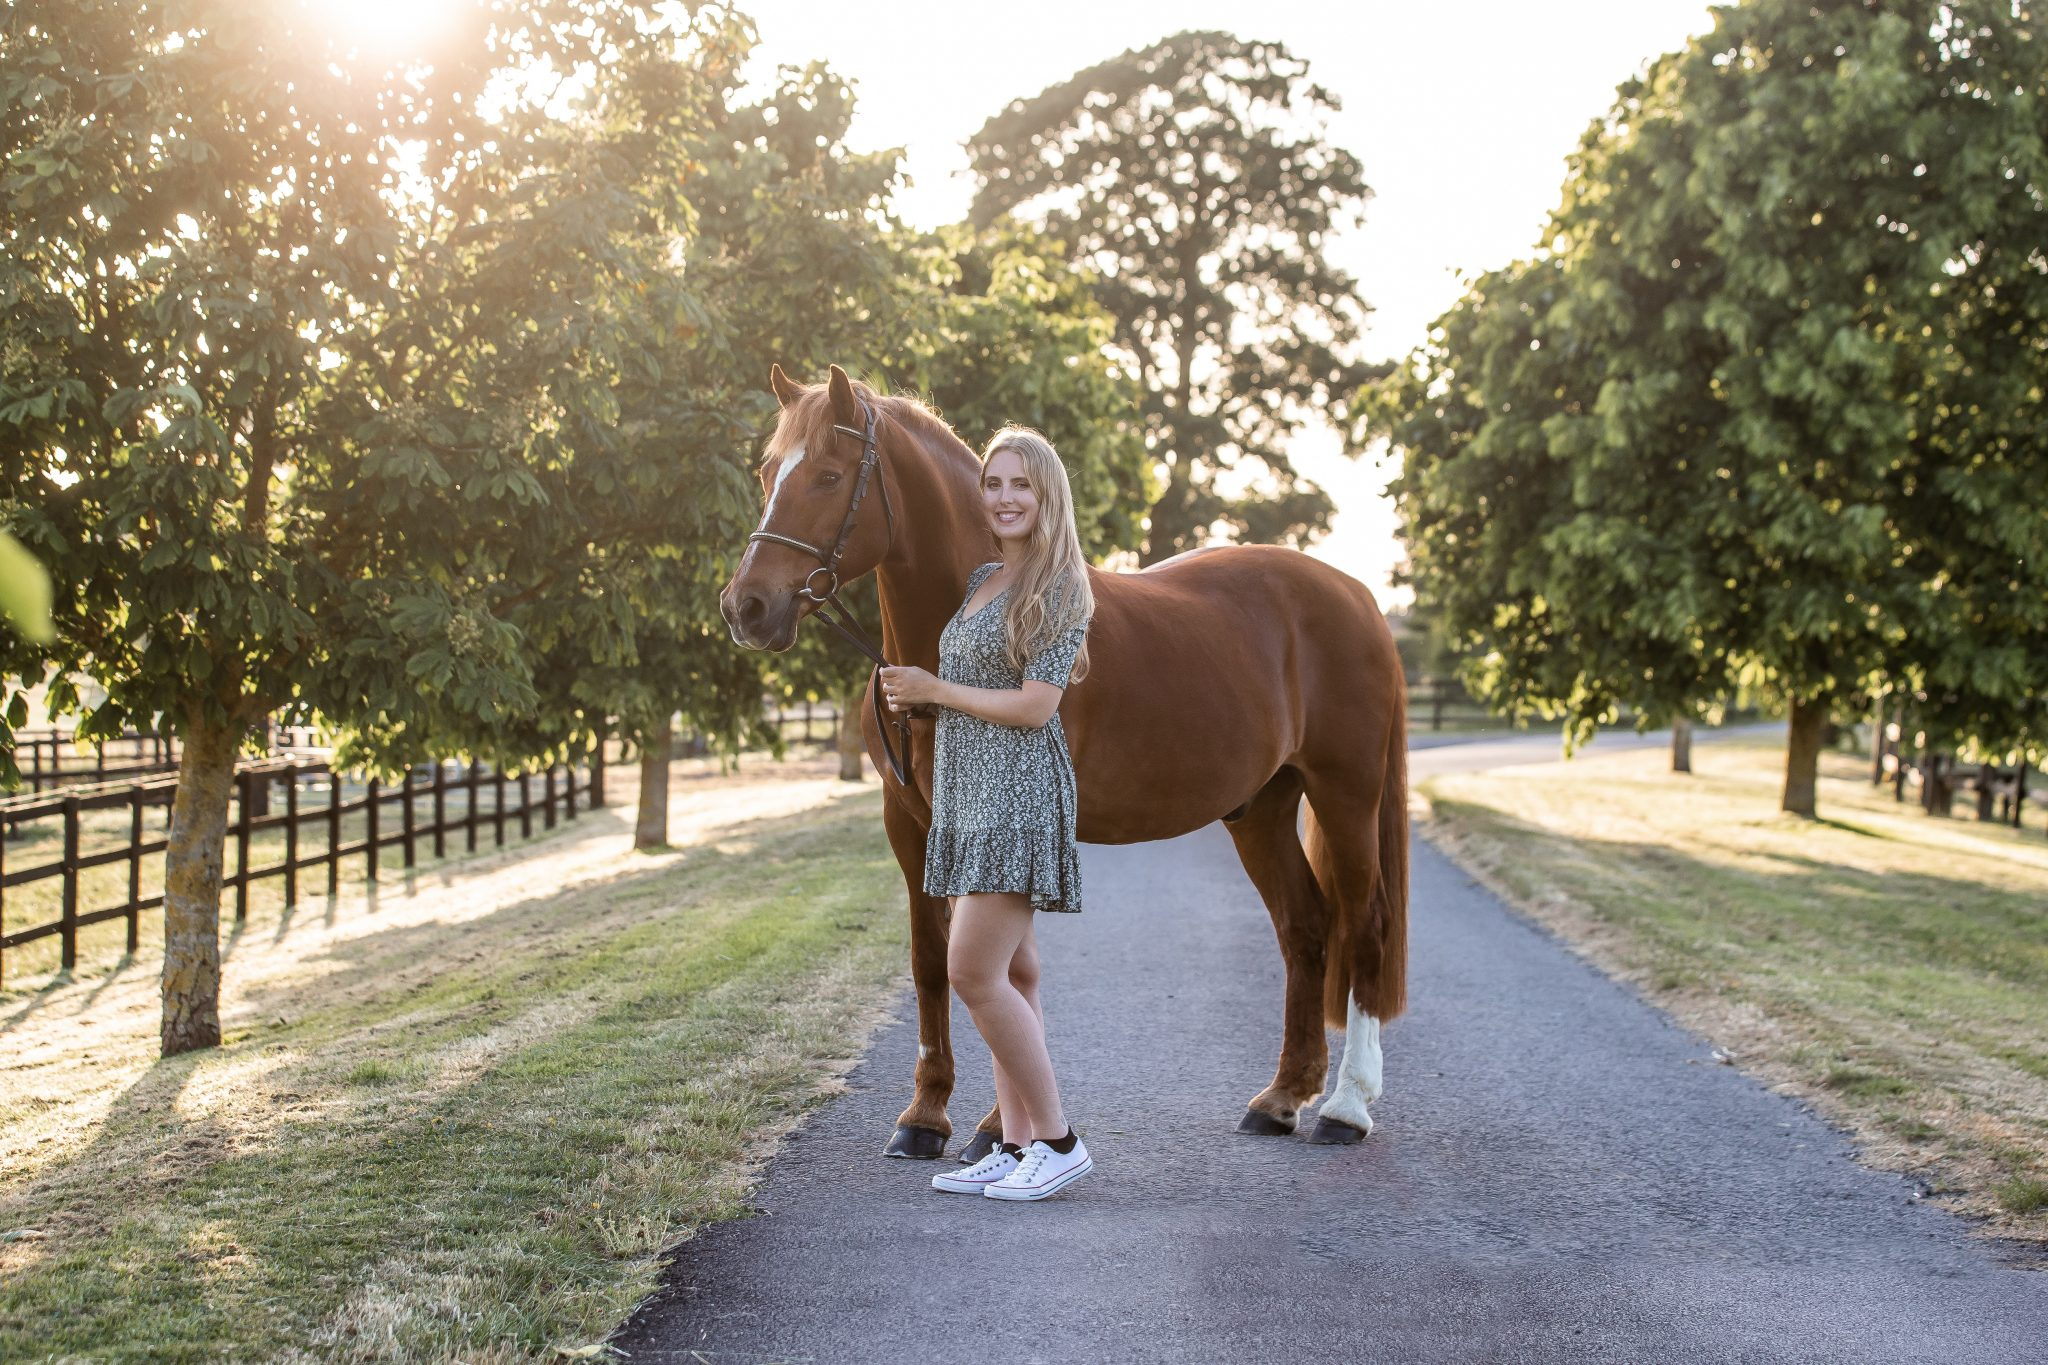 5 reasons to book a Golden Hour Photoshoot this Summer!